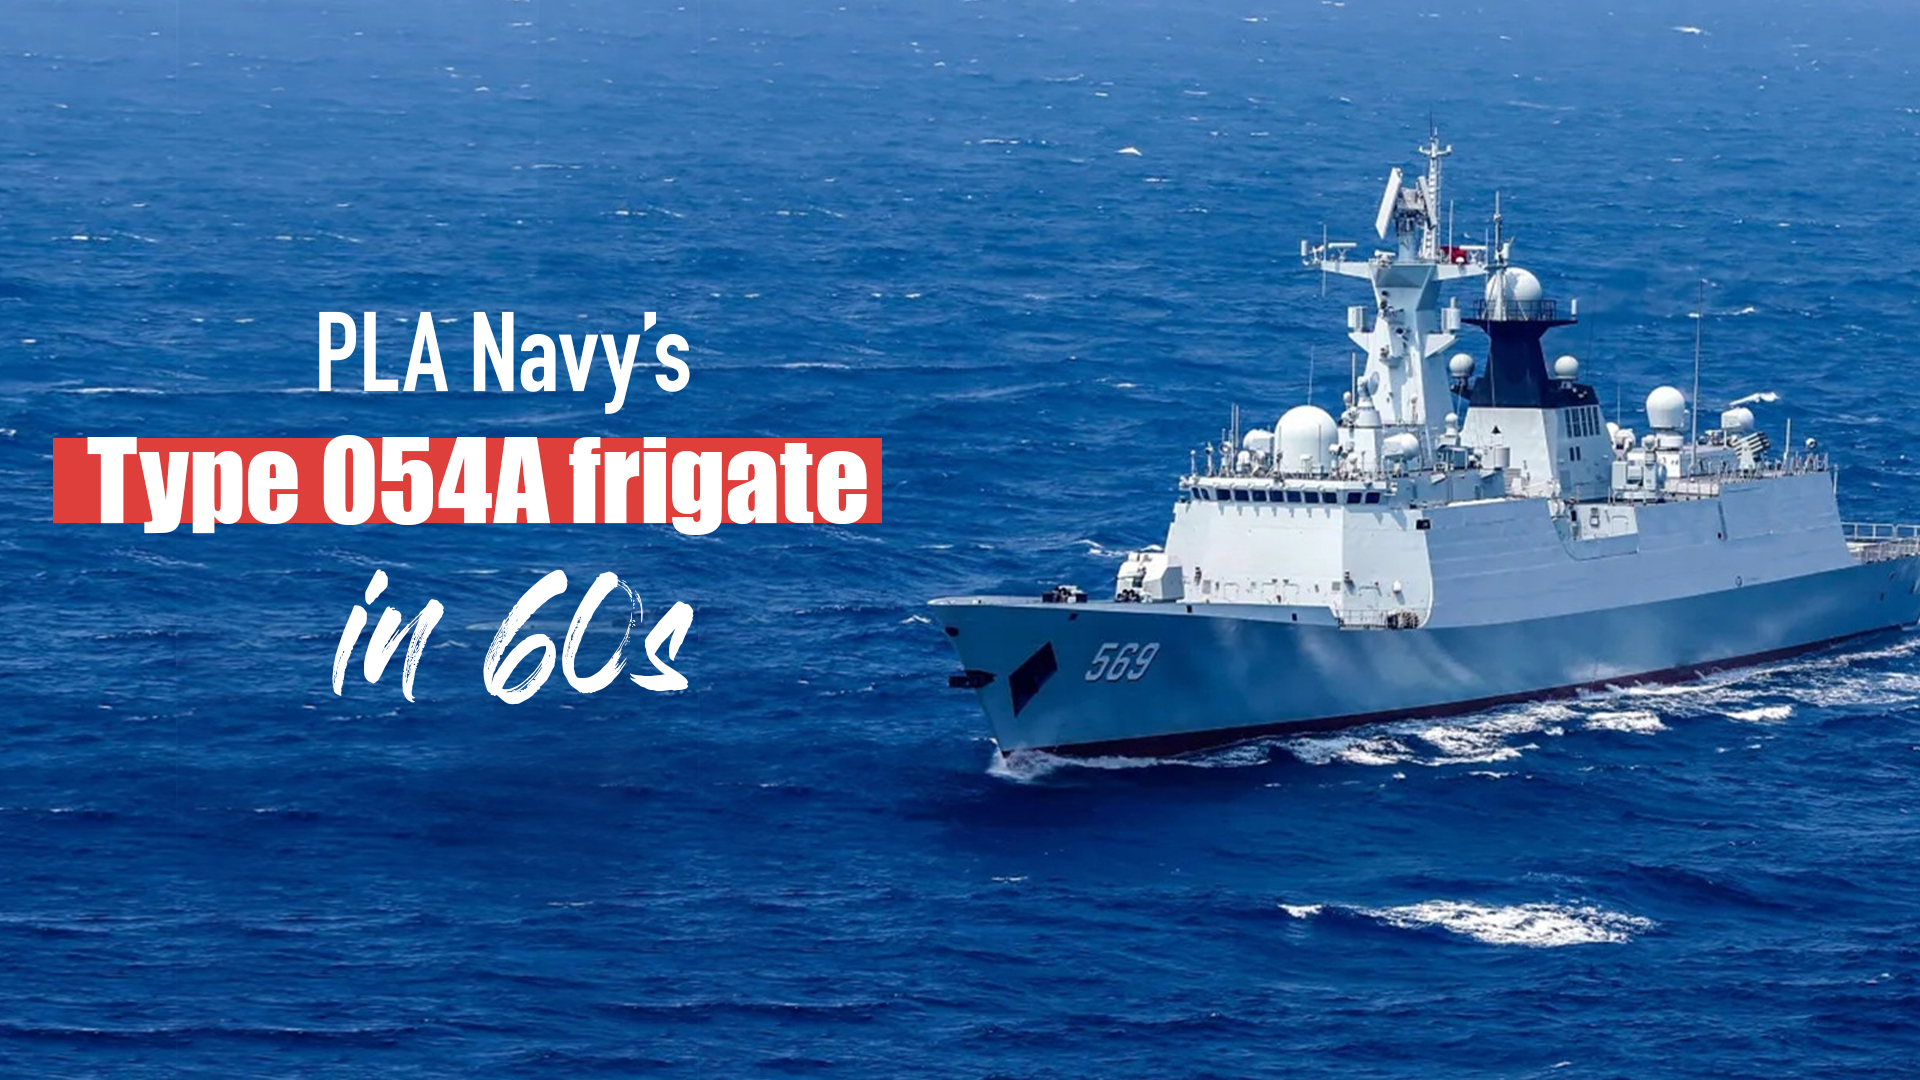 PLA Navy's Type 054A frigate in 60 seconds